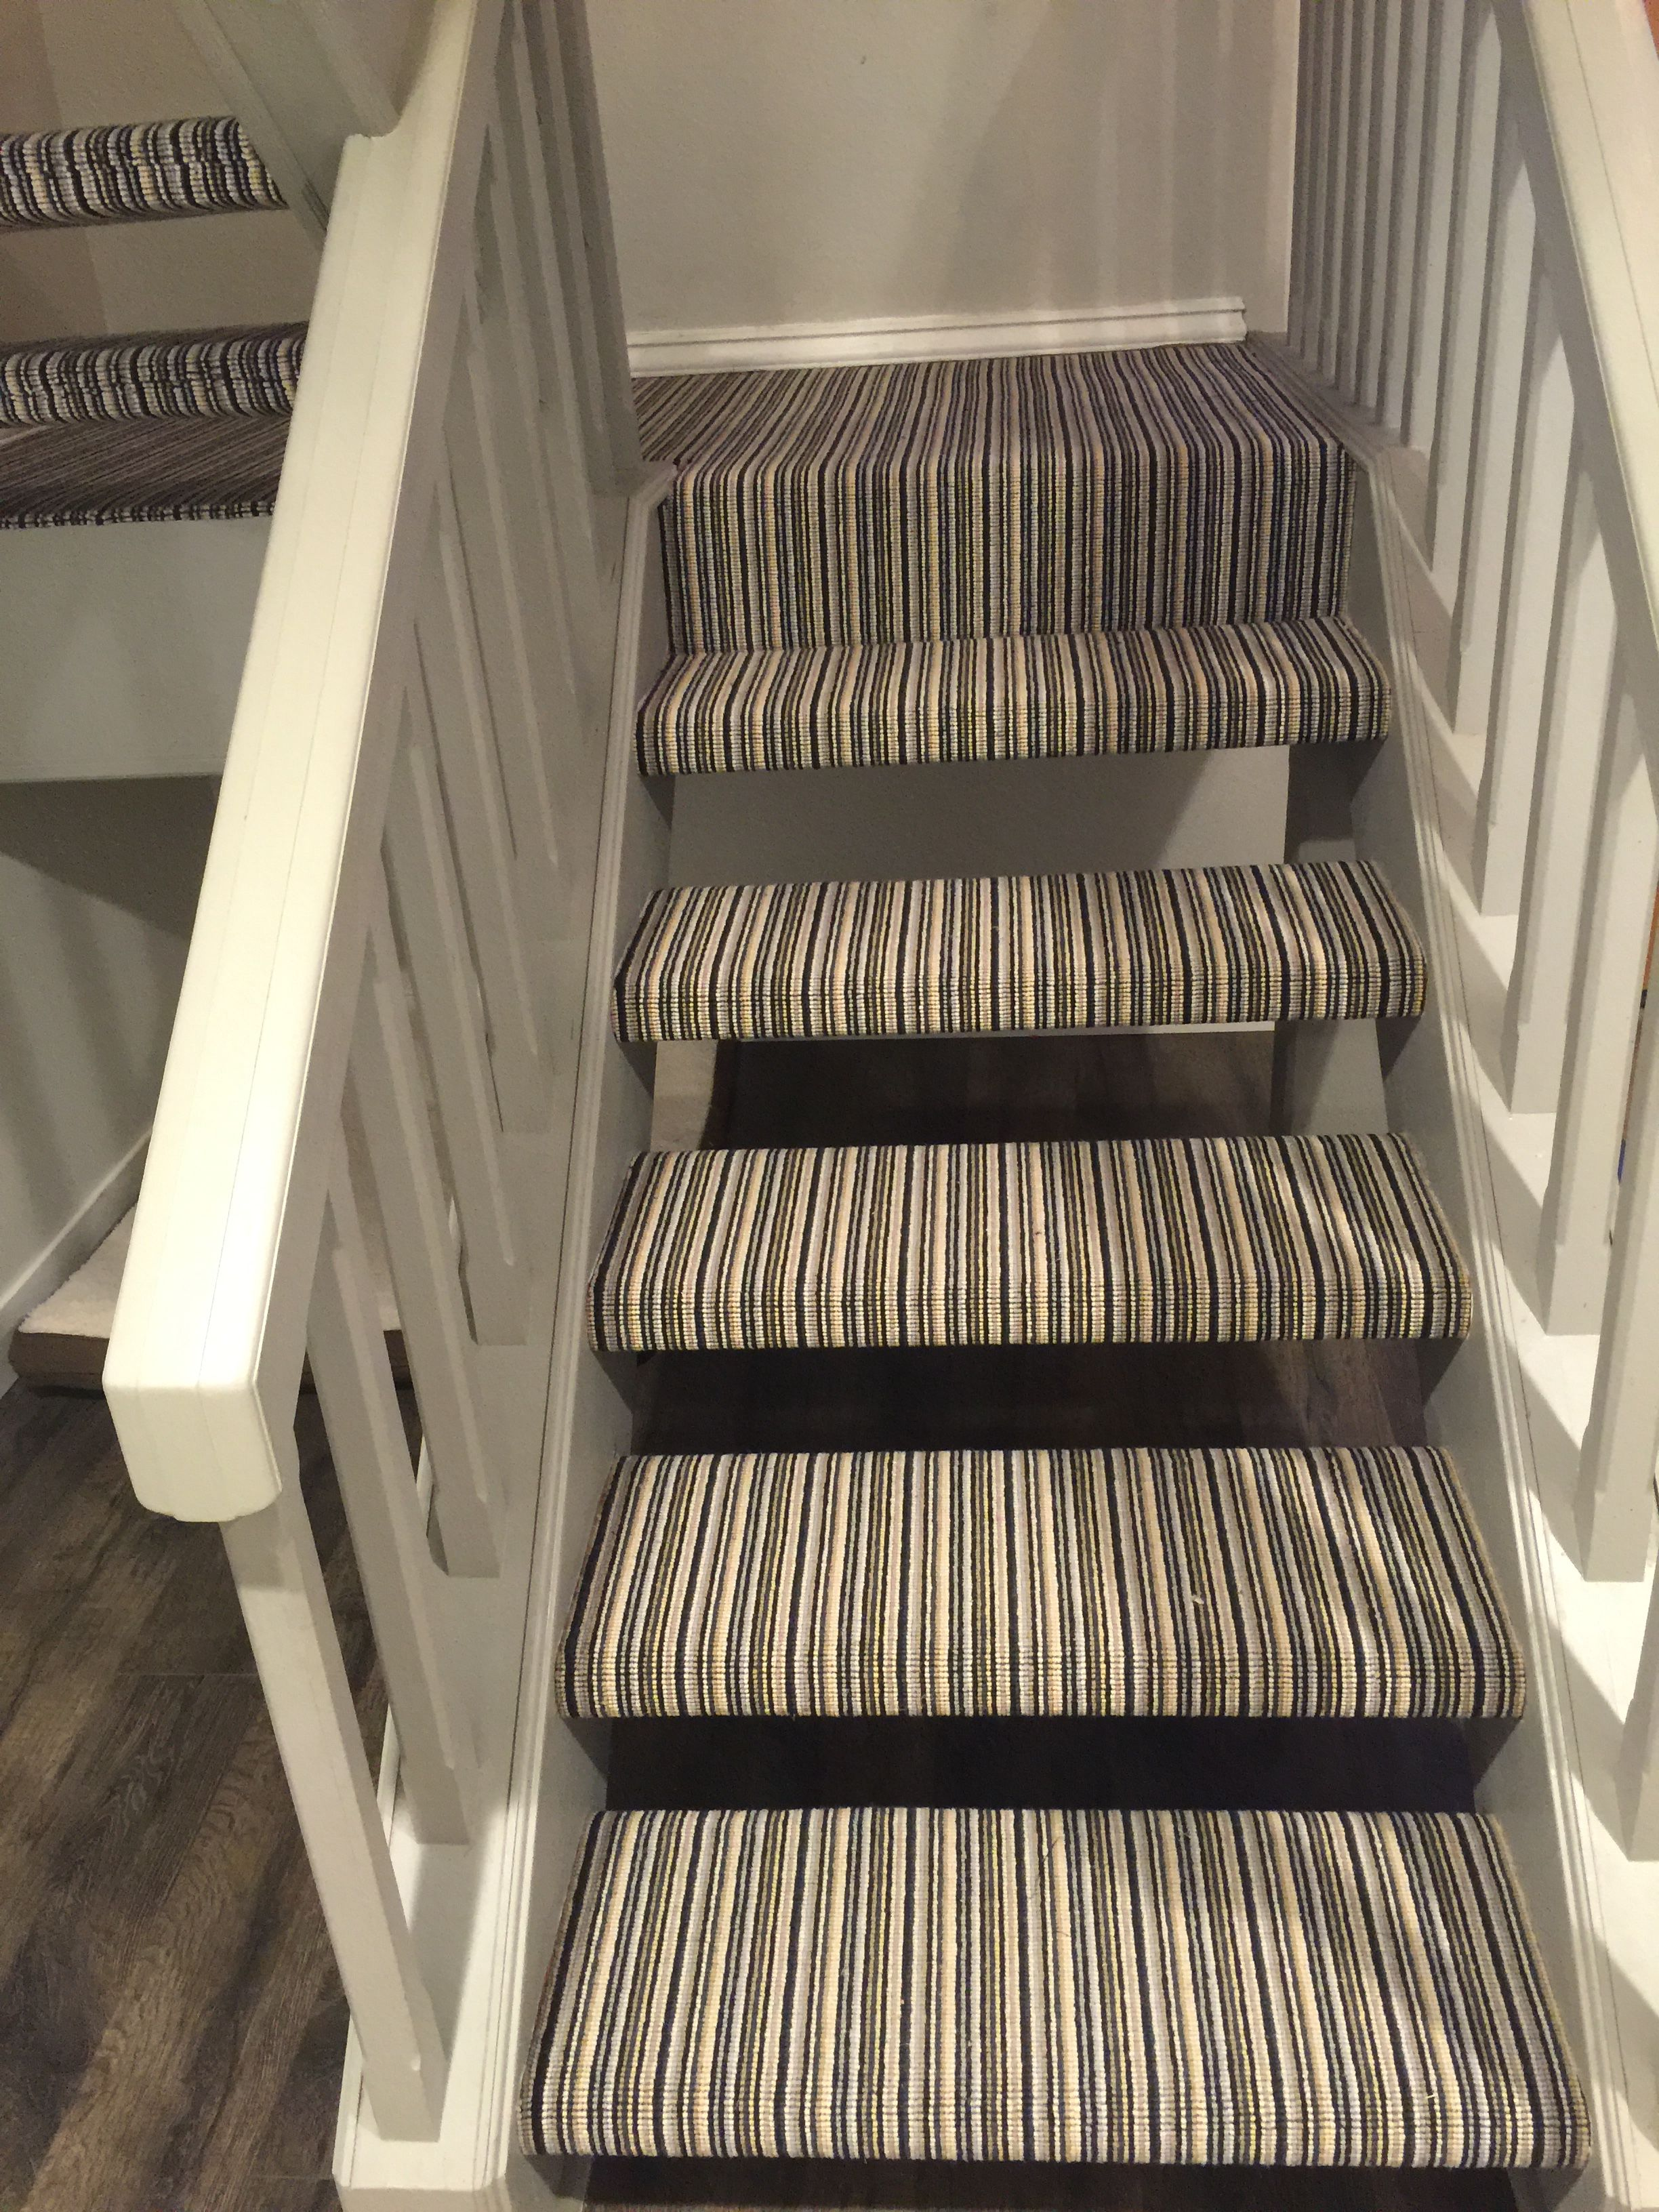 Wool stripe carpet installed for a client in Costa Mesa, CA.  Hemphill's Rugs & Carpets has an extensive selection of patterned carpet.